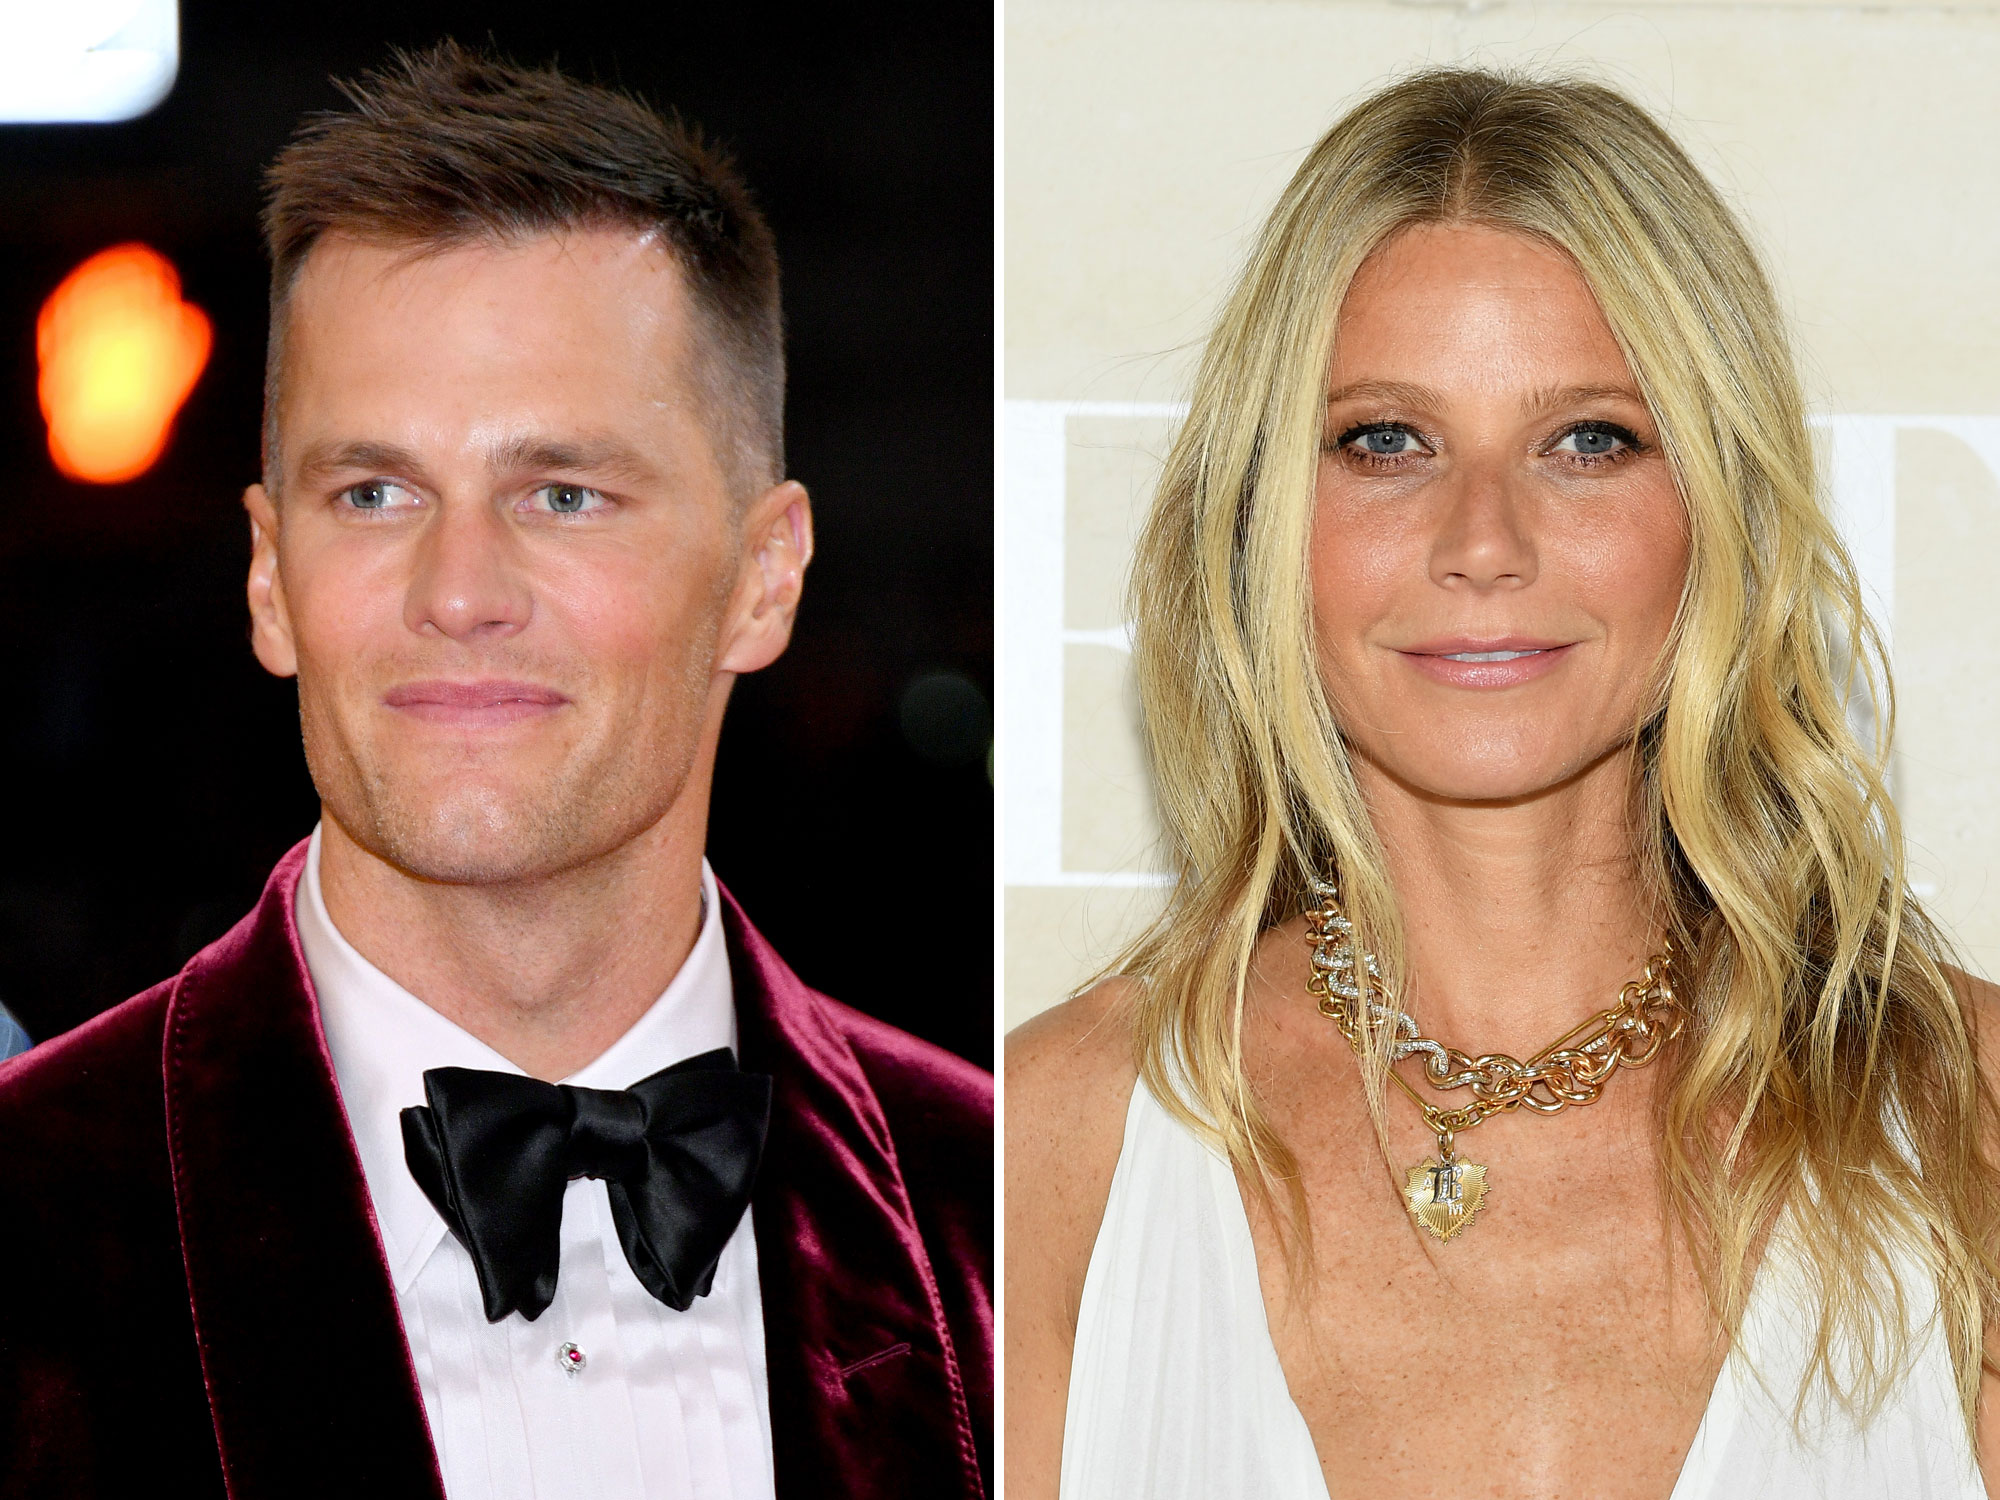 Did Tom Brady Just Shade Gwyneth Paltrow?